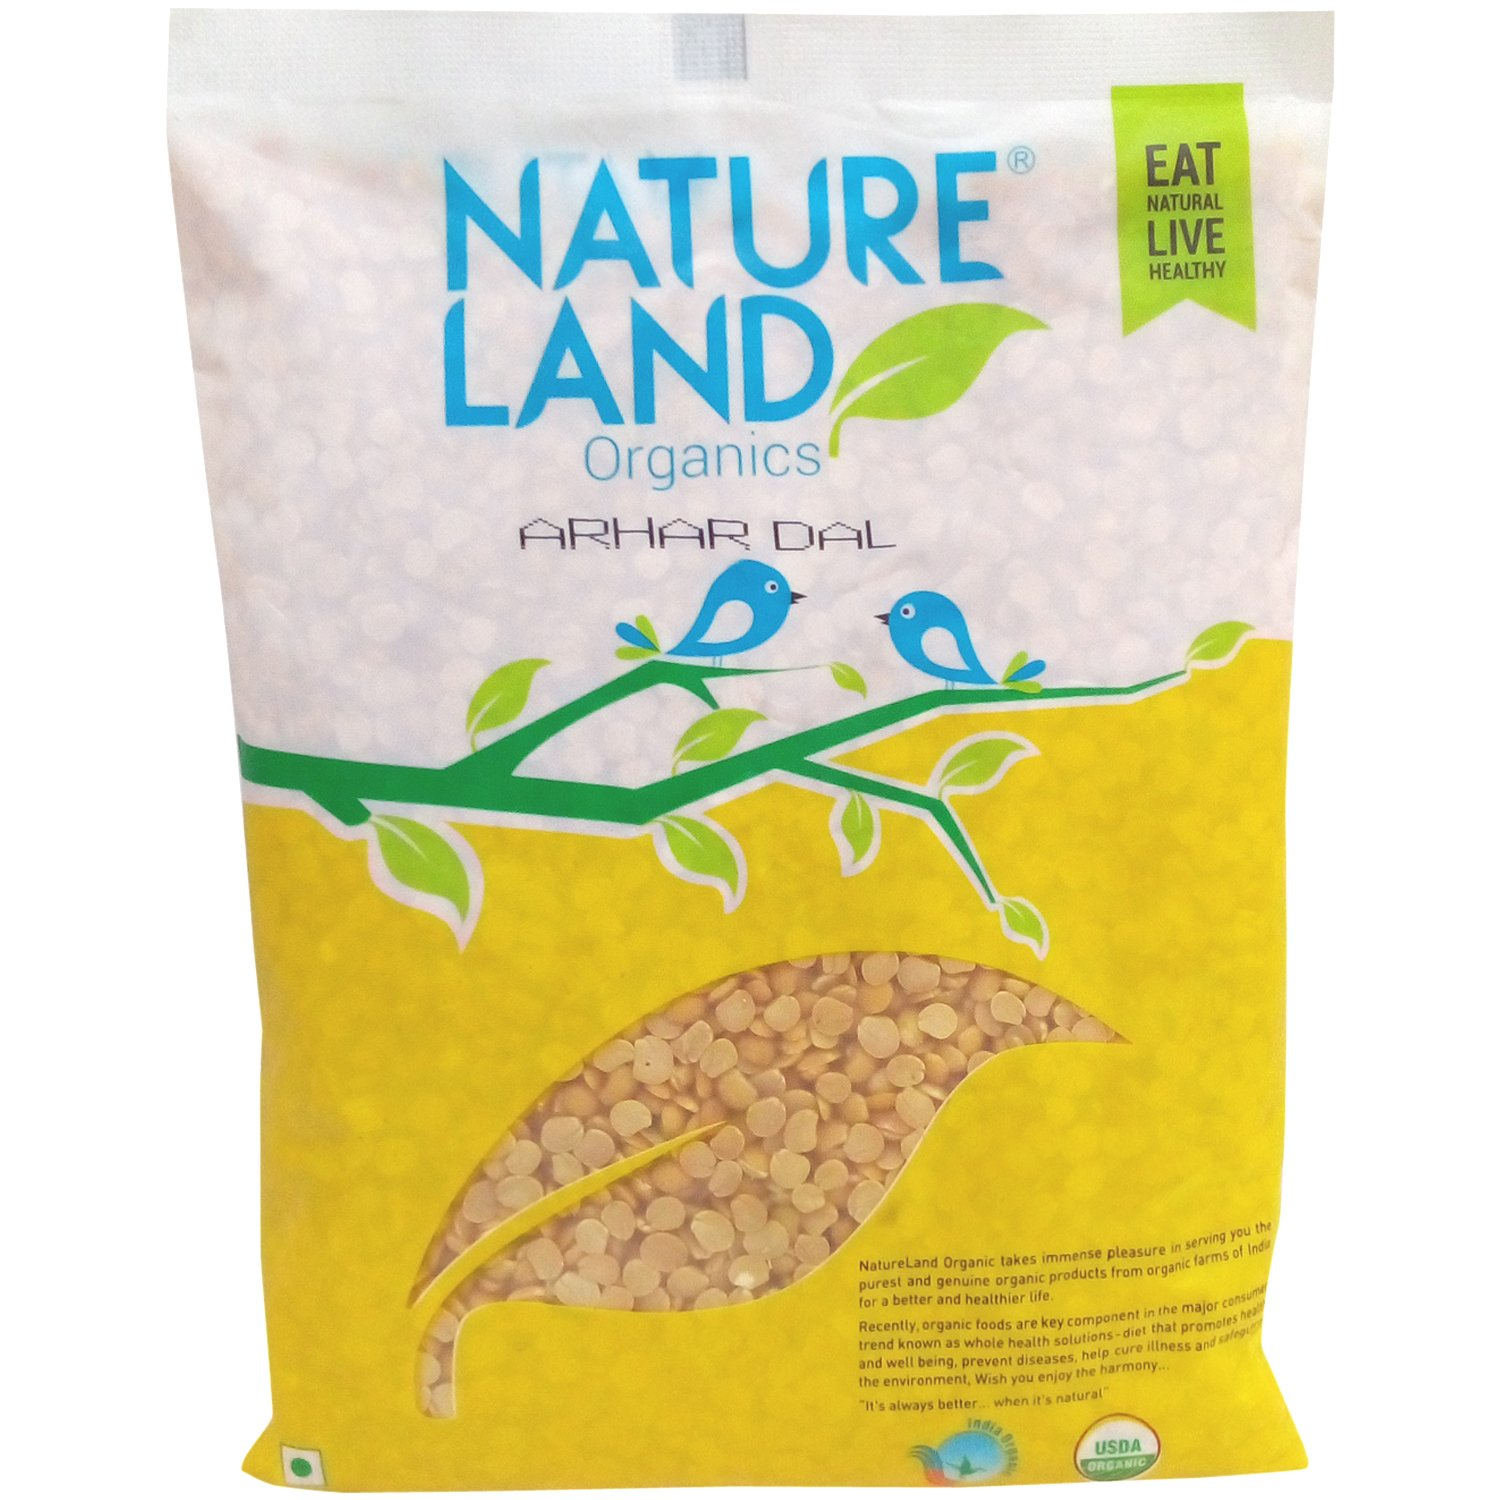 Nature Land Organics Arhar Dal 500 gm